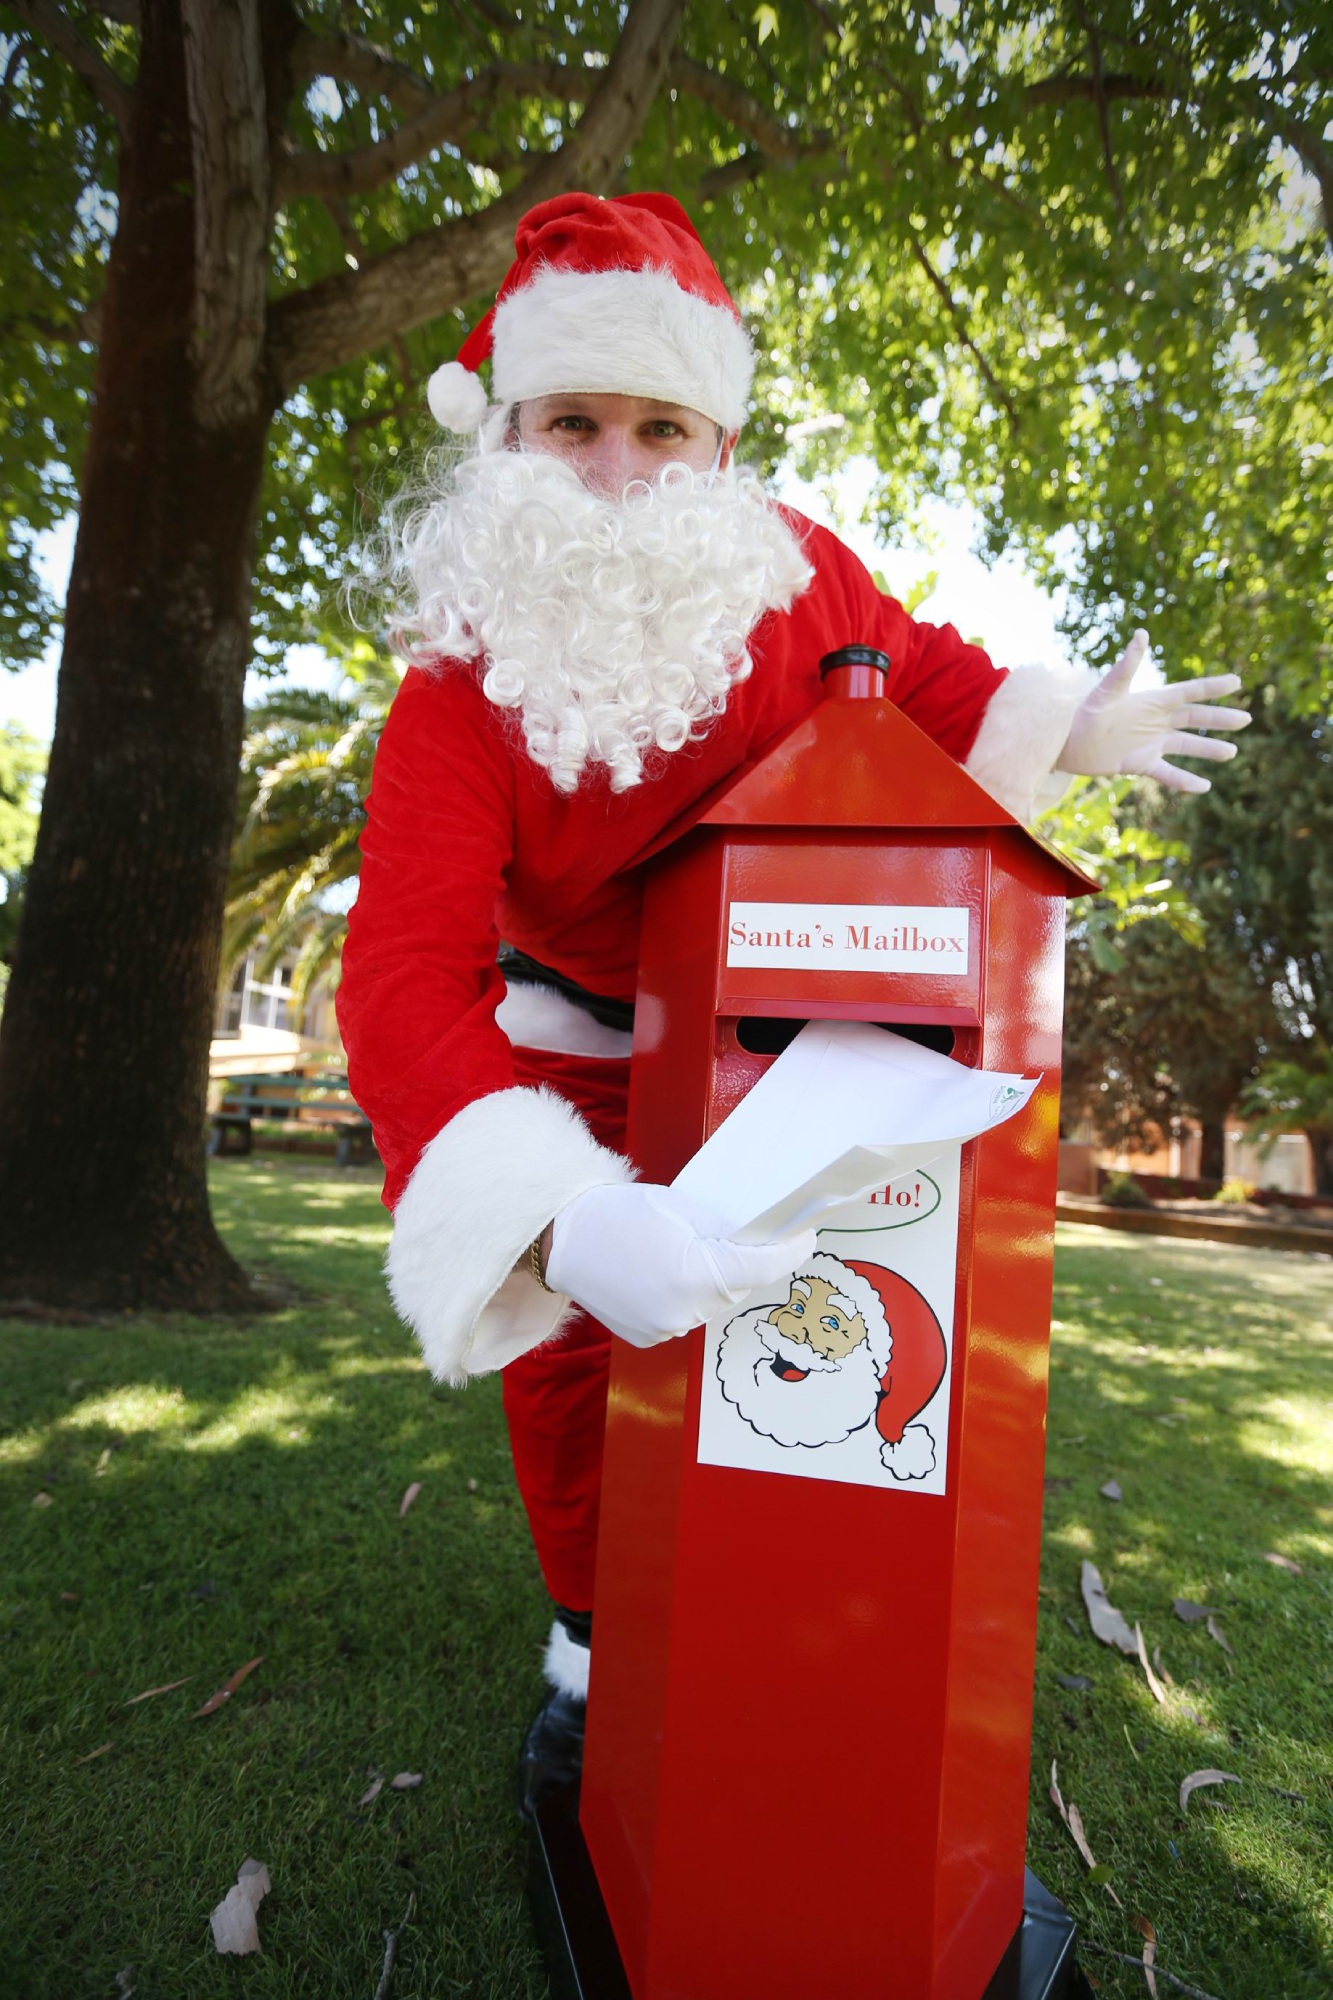 The red pillar-box was stolen from the Saint Vincent De Paul Society shop on Old Perth Road.